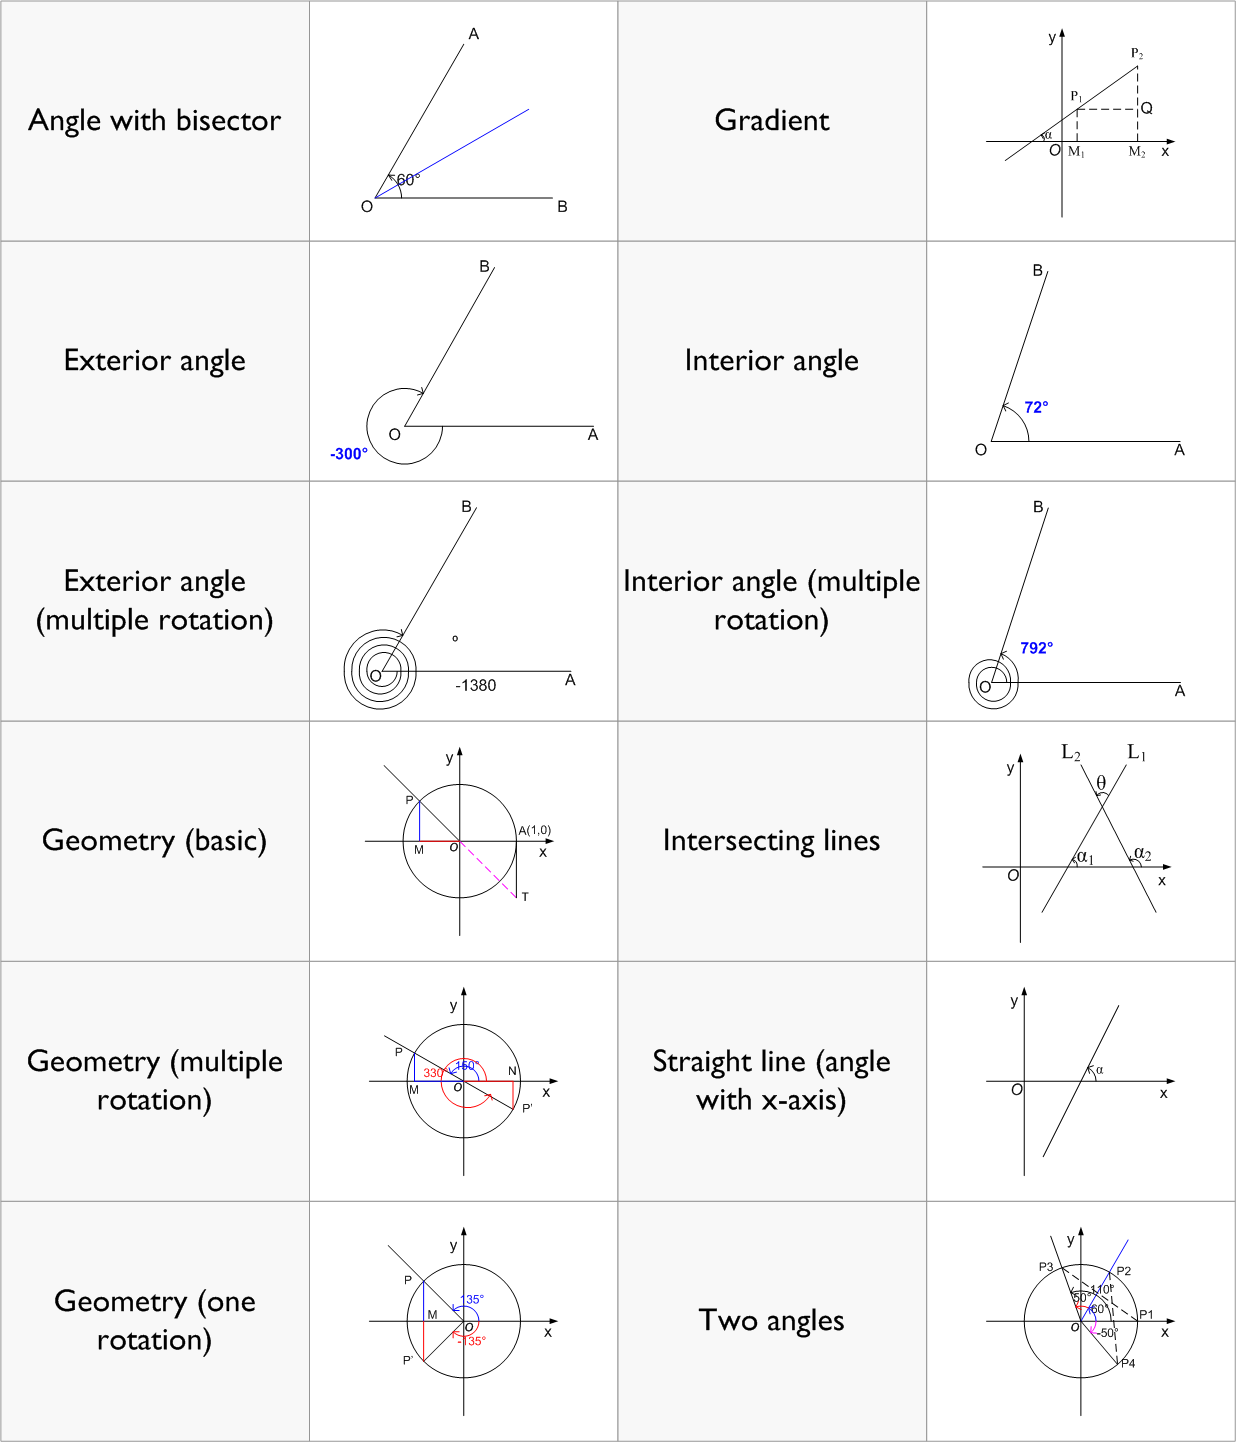 Angle Shapes Help You Illustrate Geometry In Visio Visio Guy